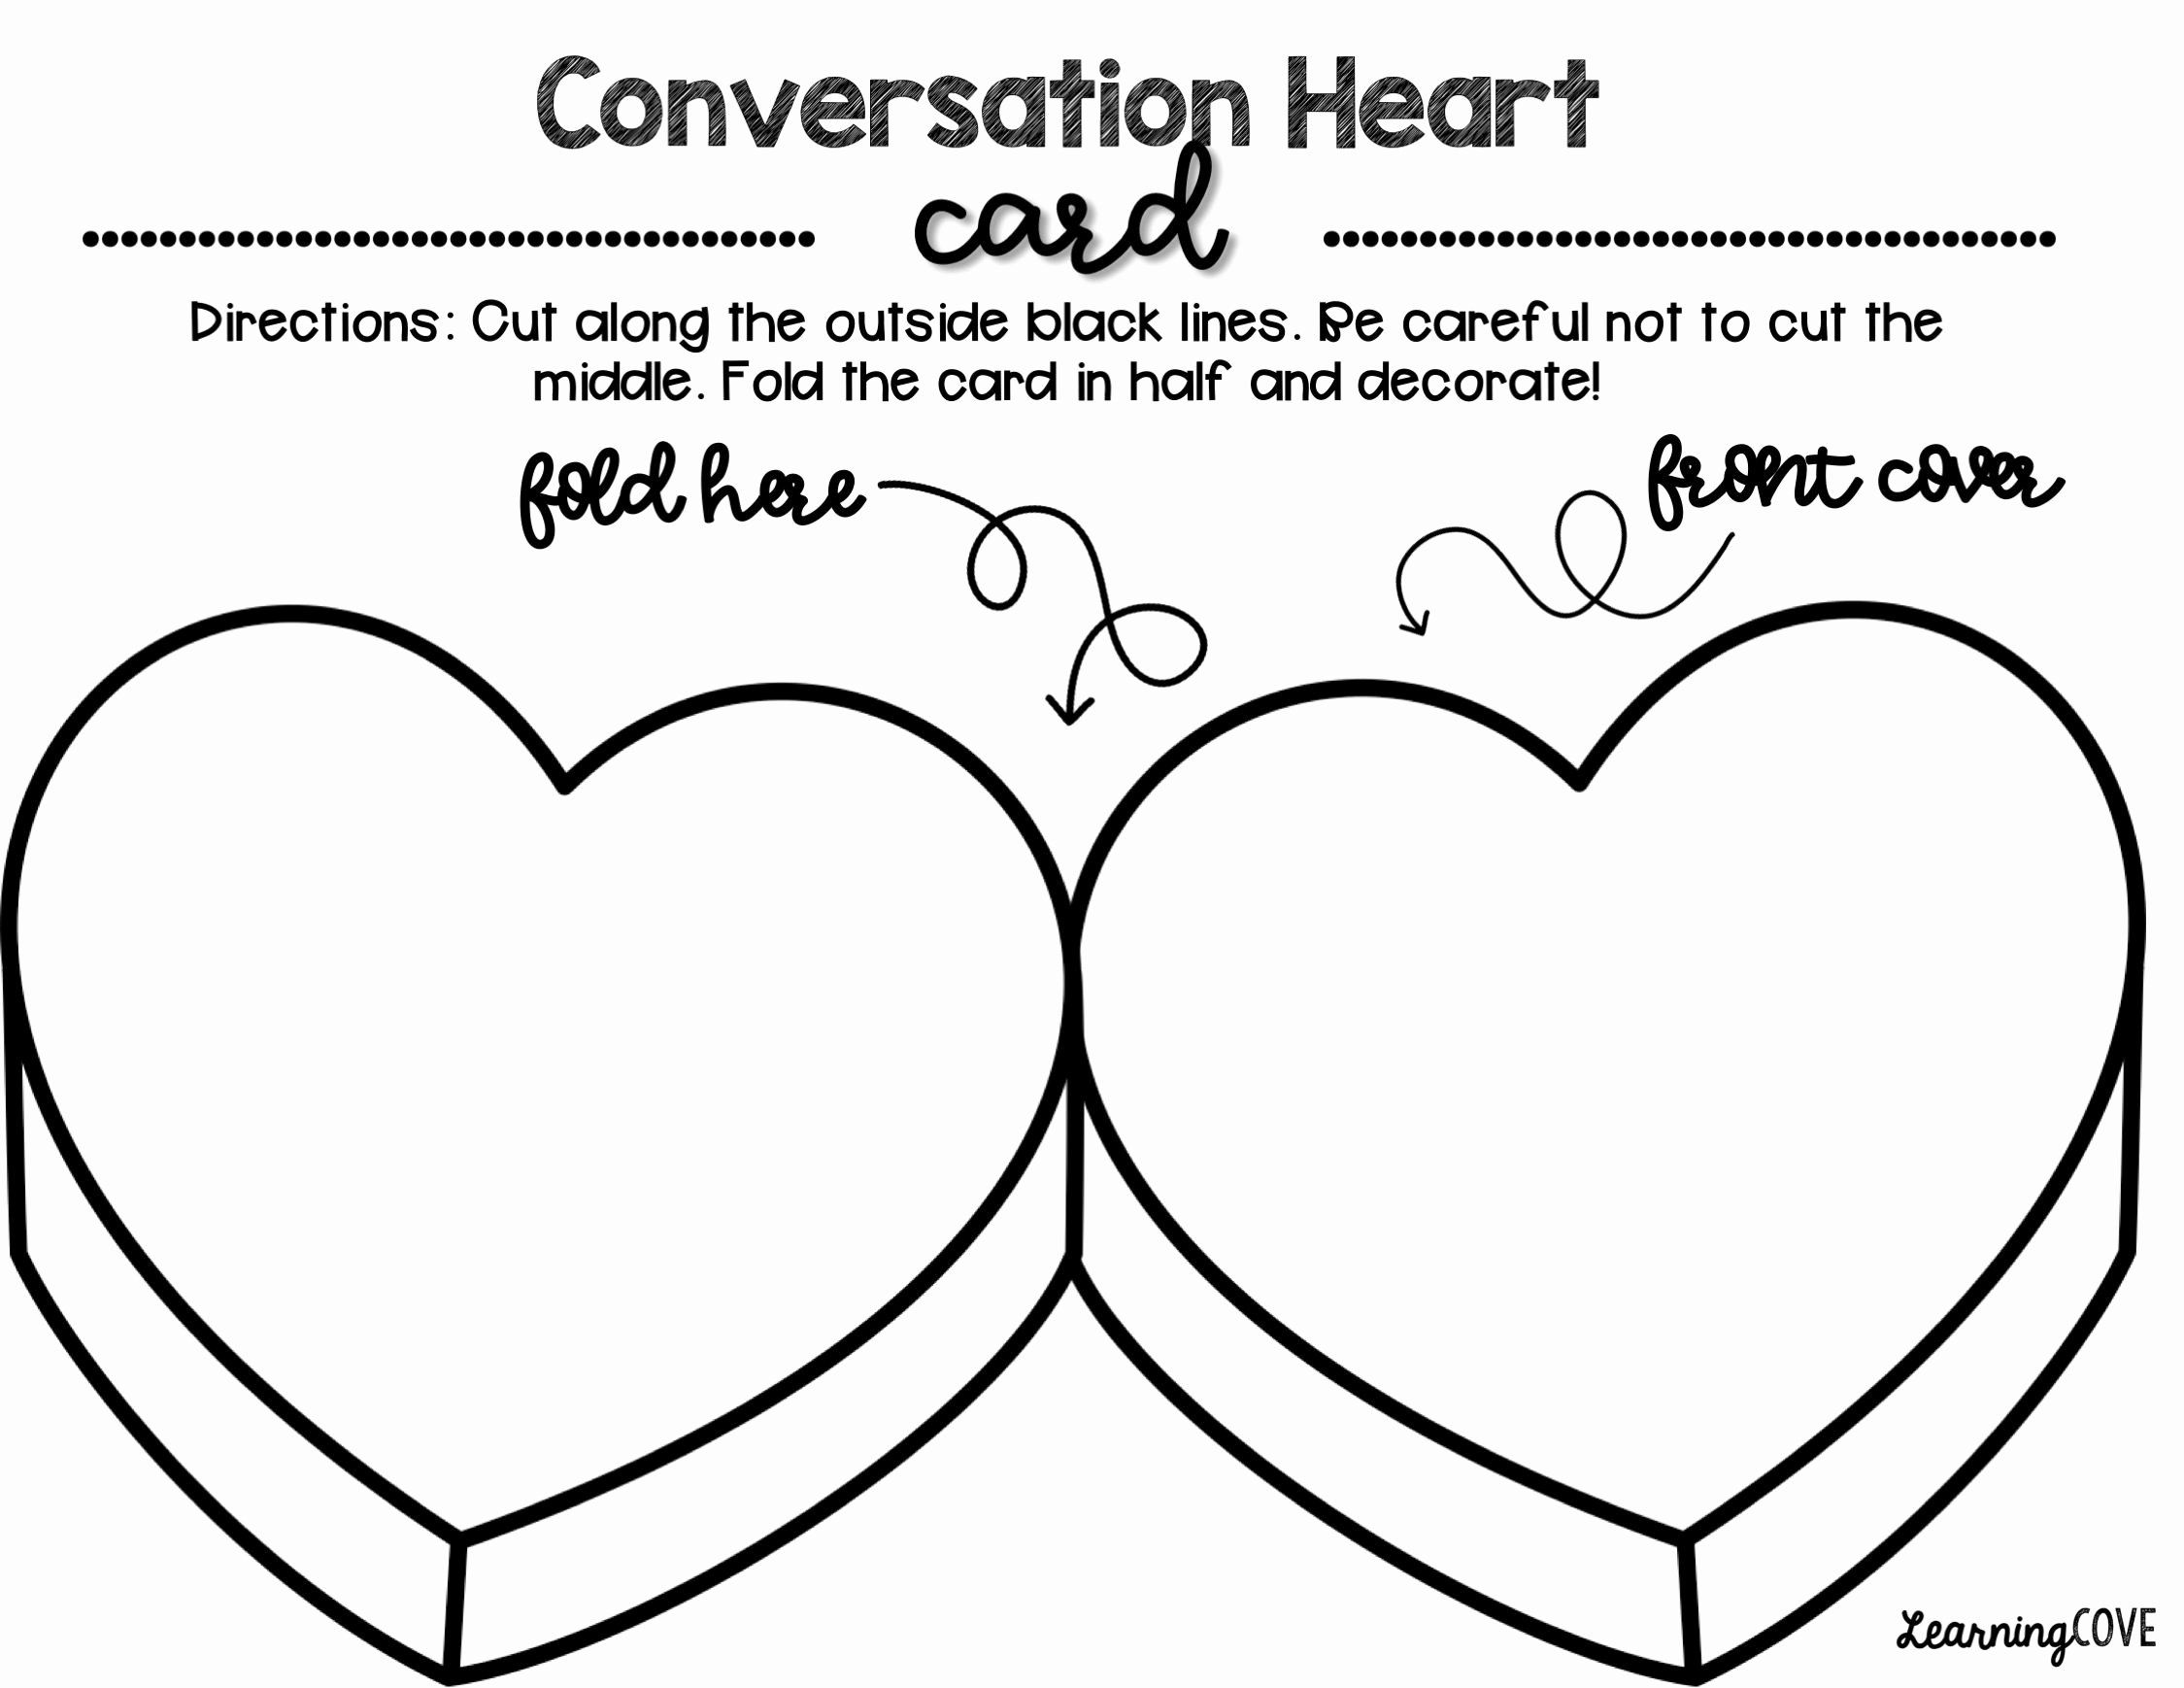 Conversation Hearts Coloring Pages Luxury Conversation